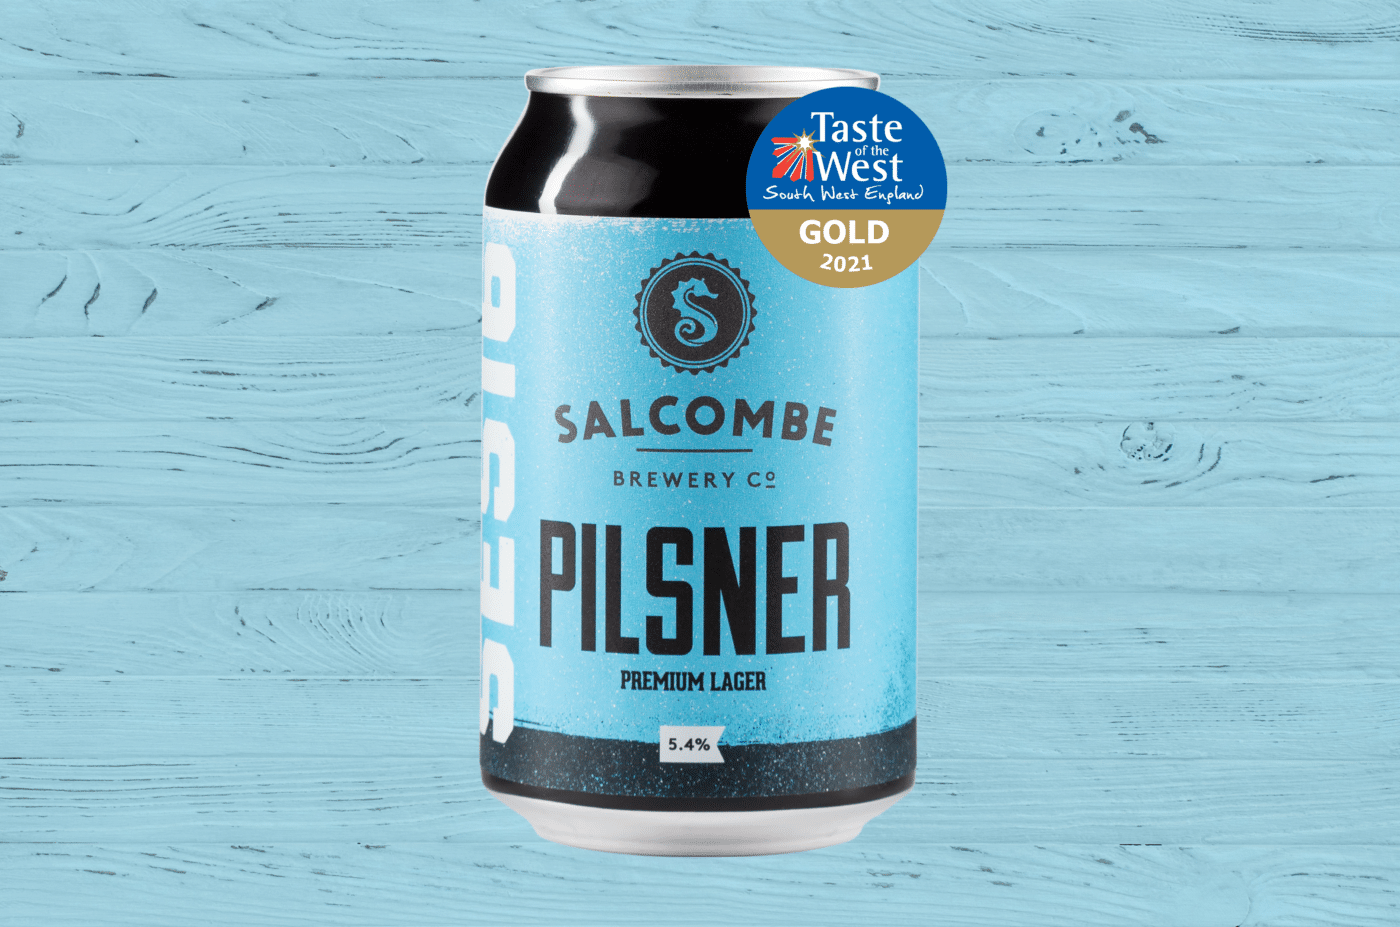 Awards for Salcombe Brewery